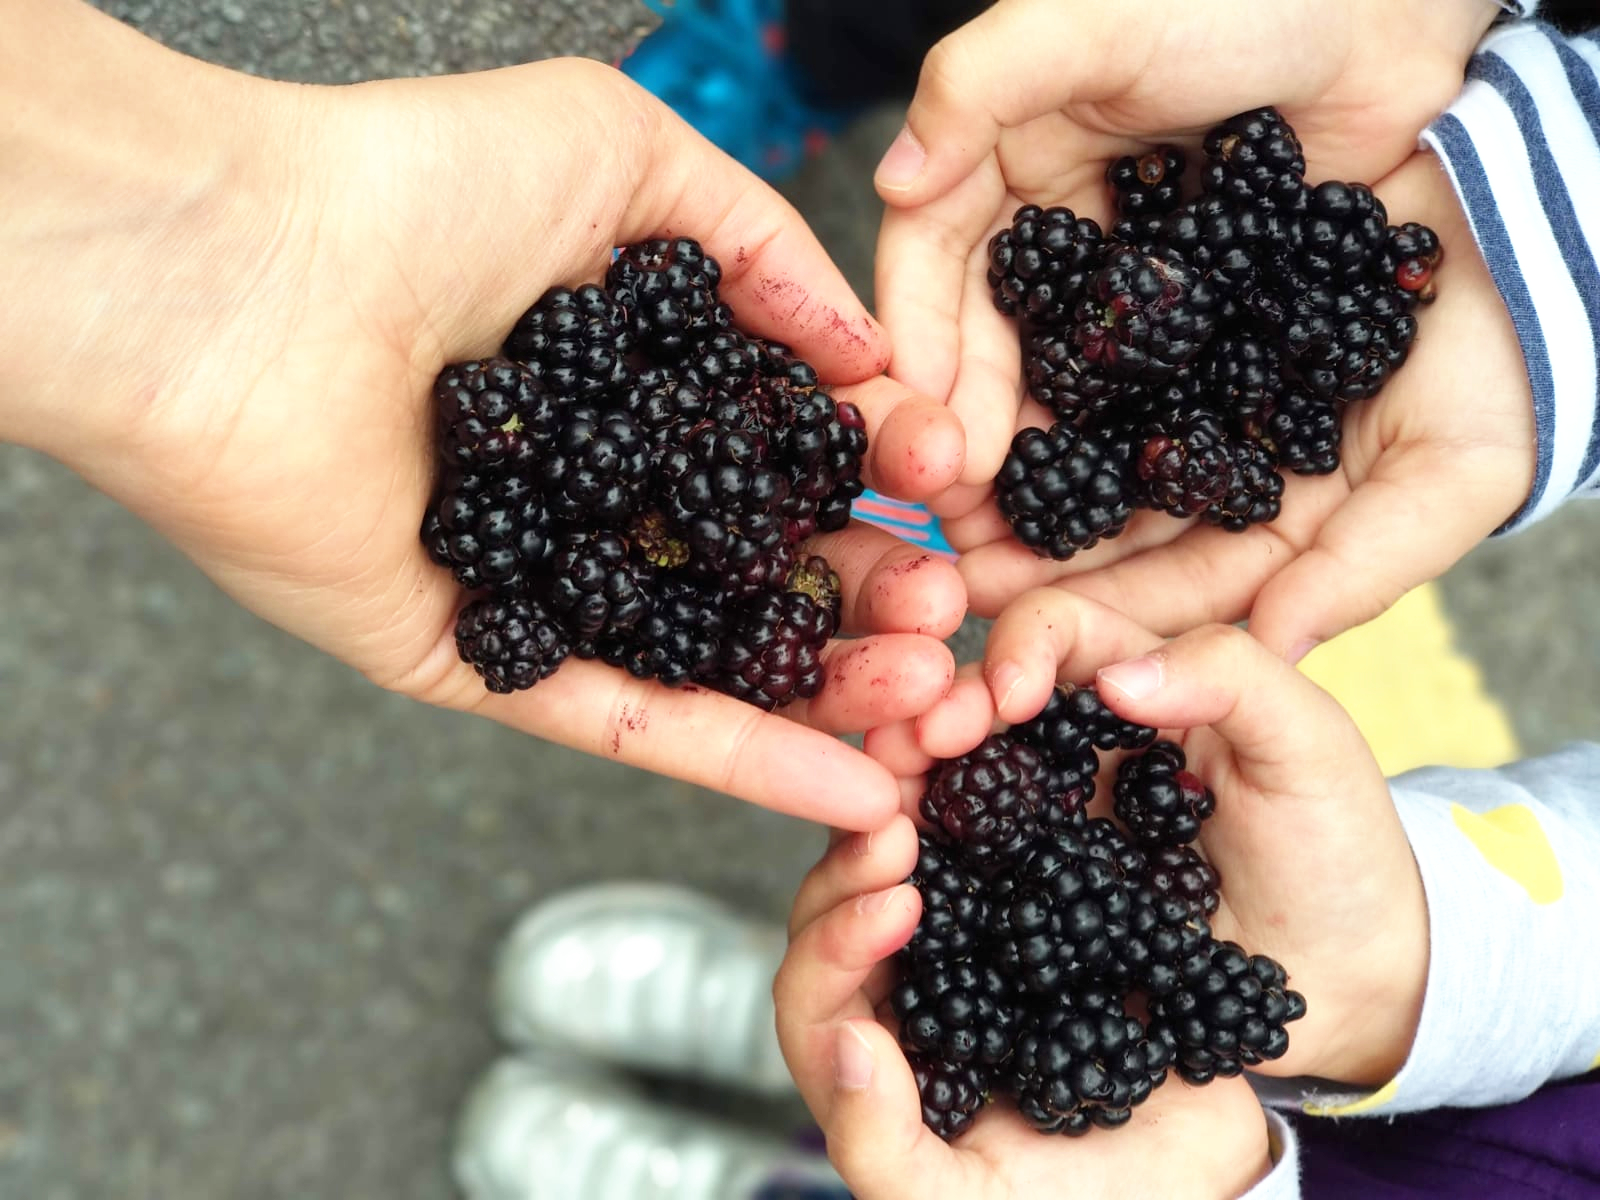 Children's hands are filled with blackberries